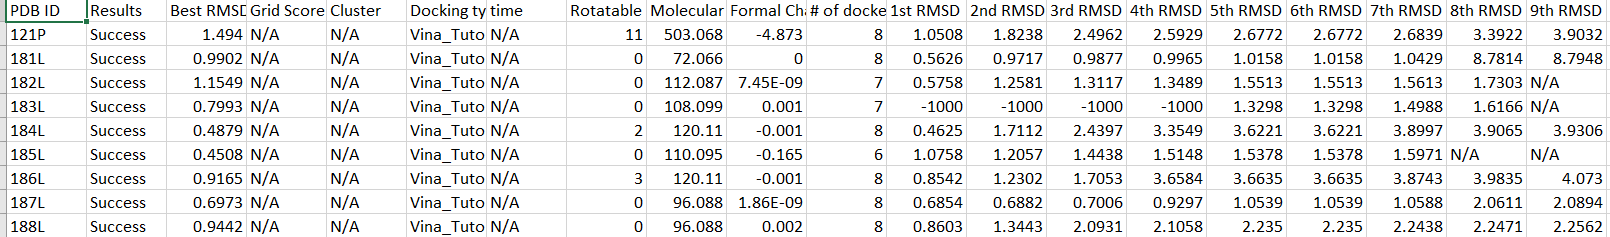 AutoDock Vina Results CSV.PNG